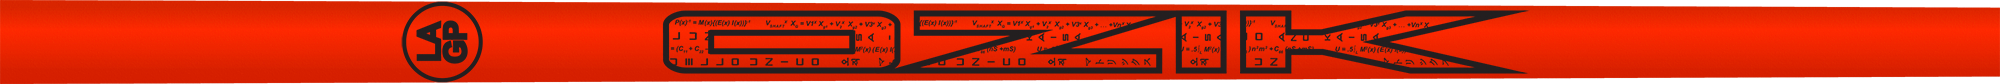 Ozik White Tie: Ferrari Red Black Matte - Wood 40 A